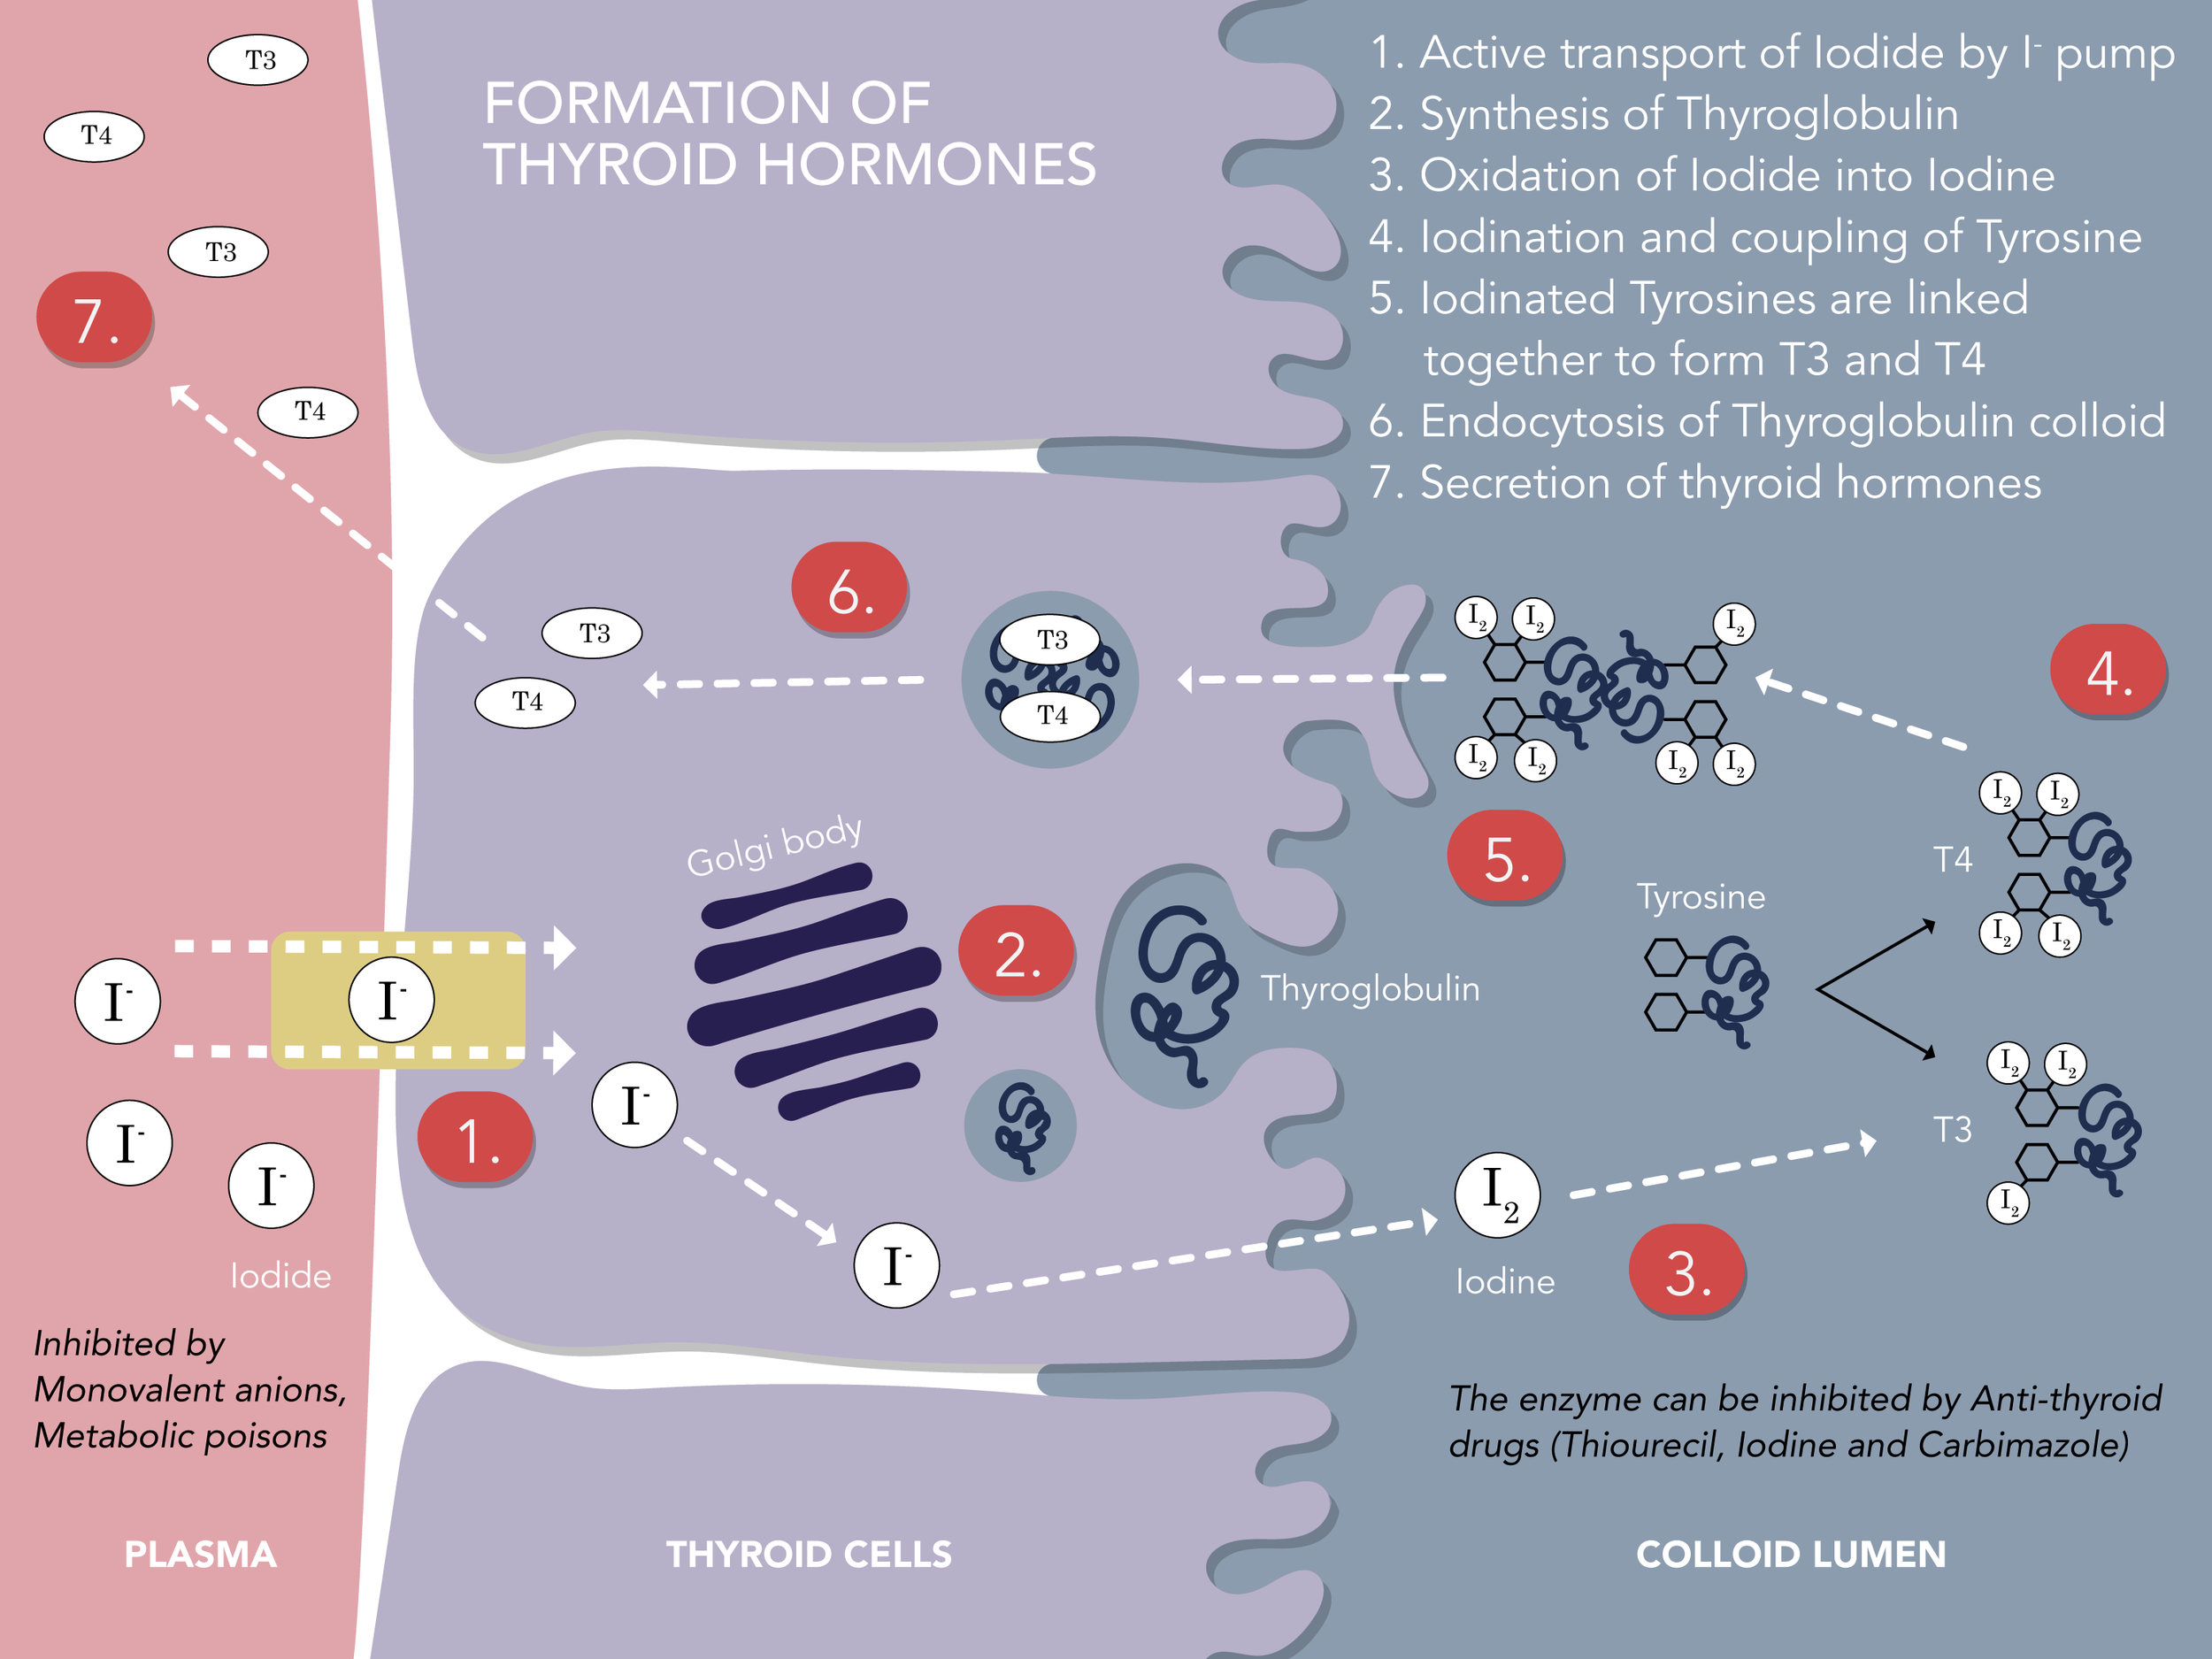 Formation of thyroid hormones